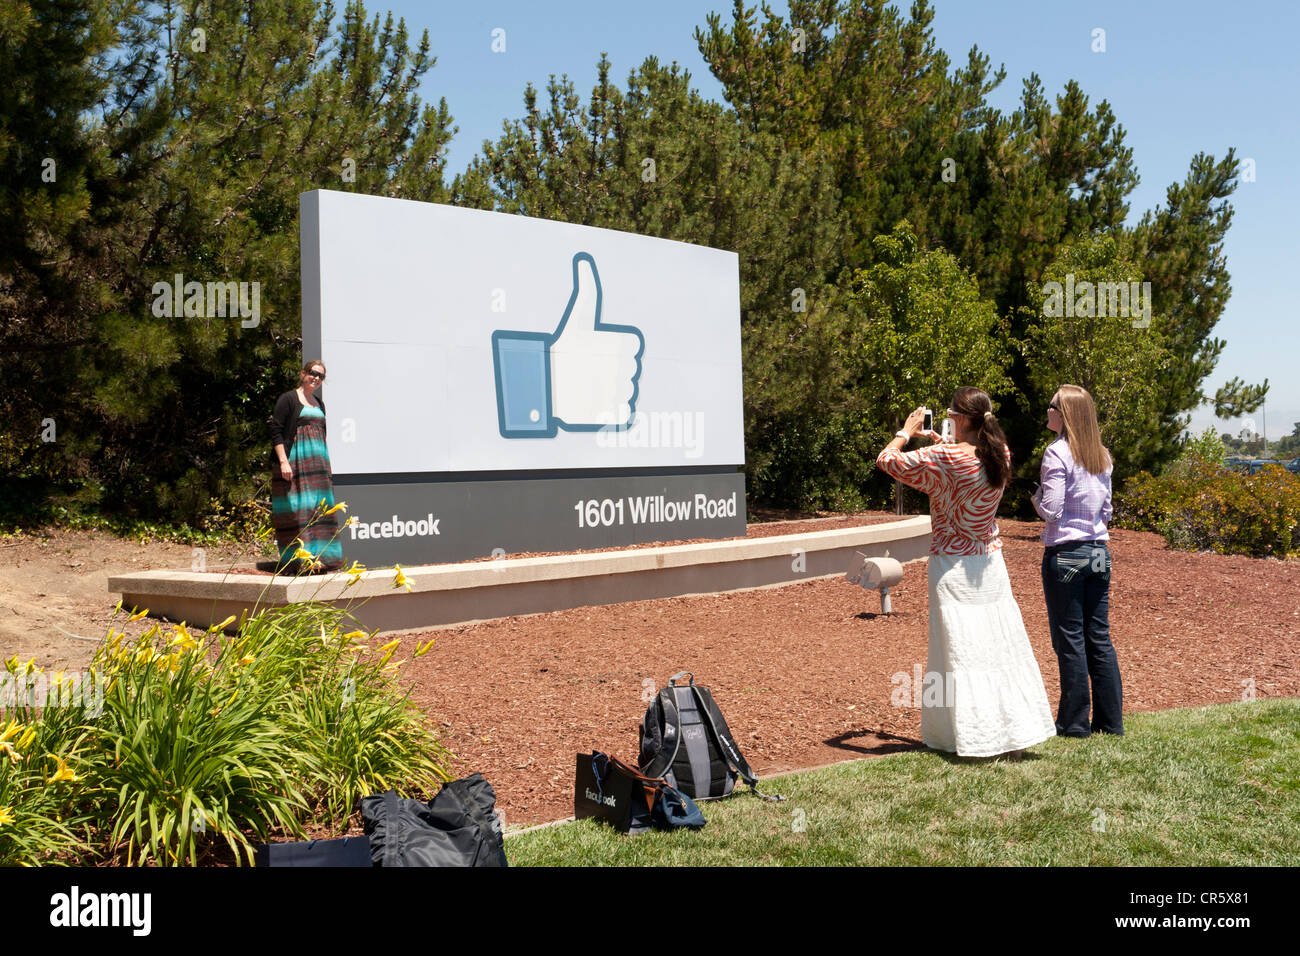 Facebook Headquarters Thumbs Up Sign in Menlo Park, Silicon Valley